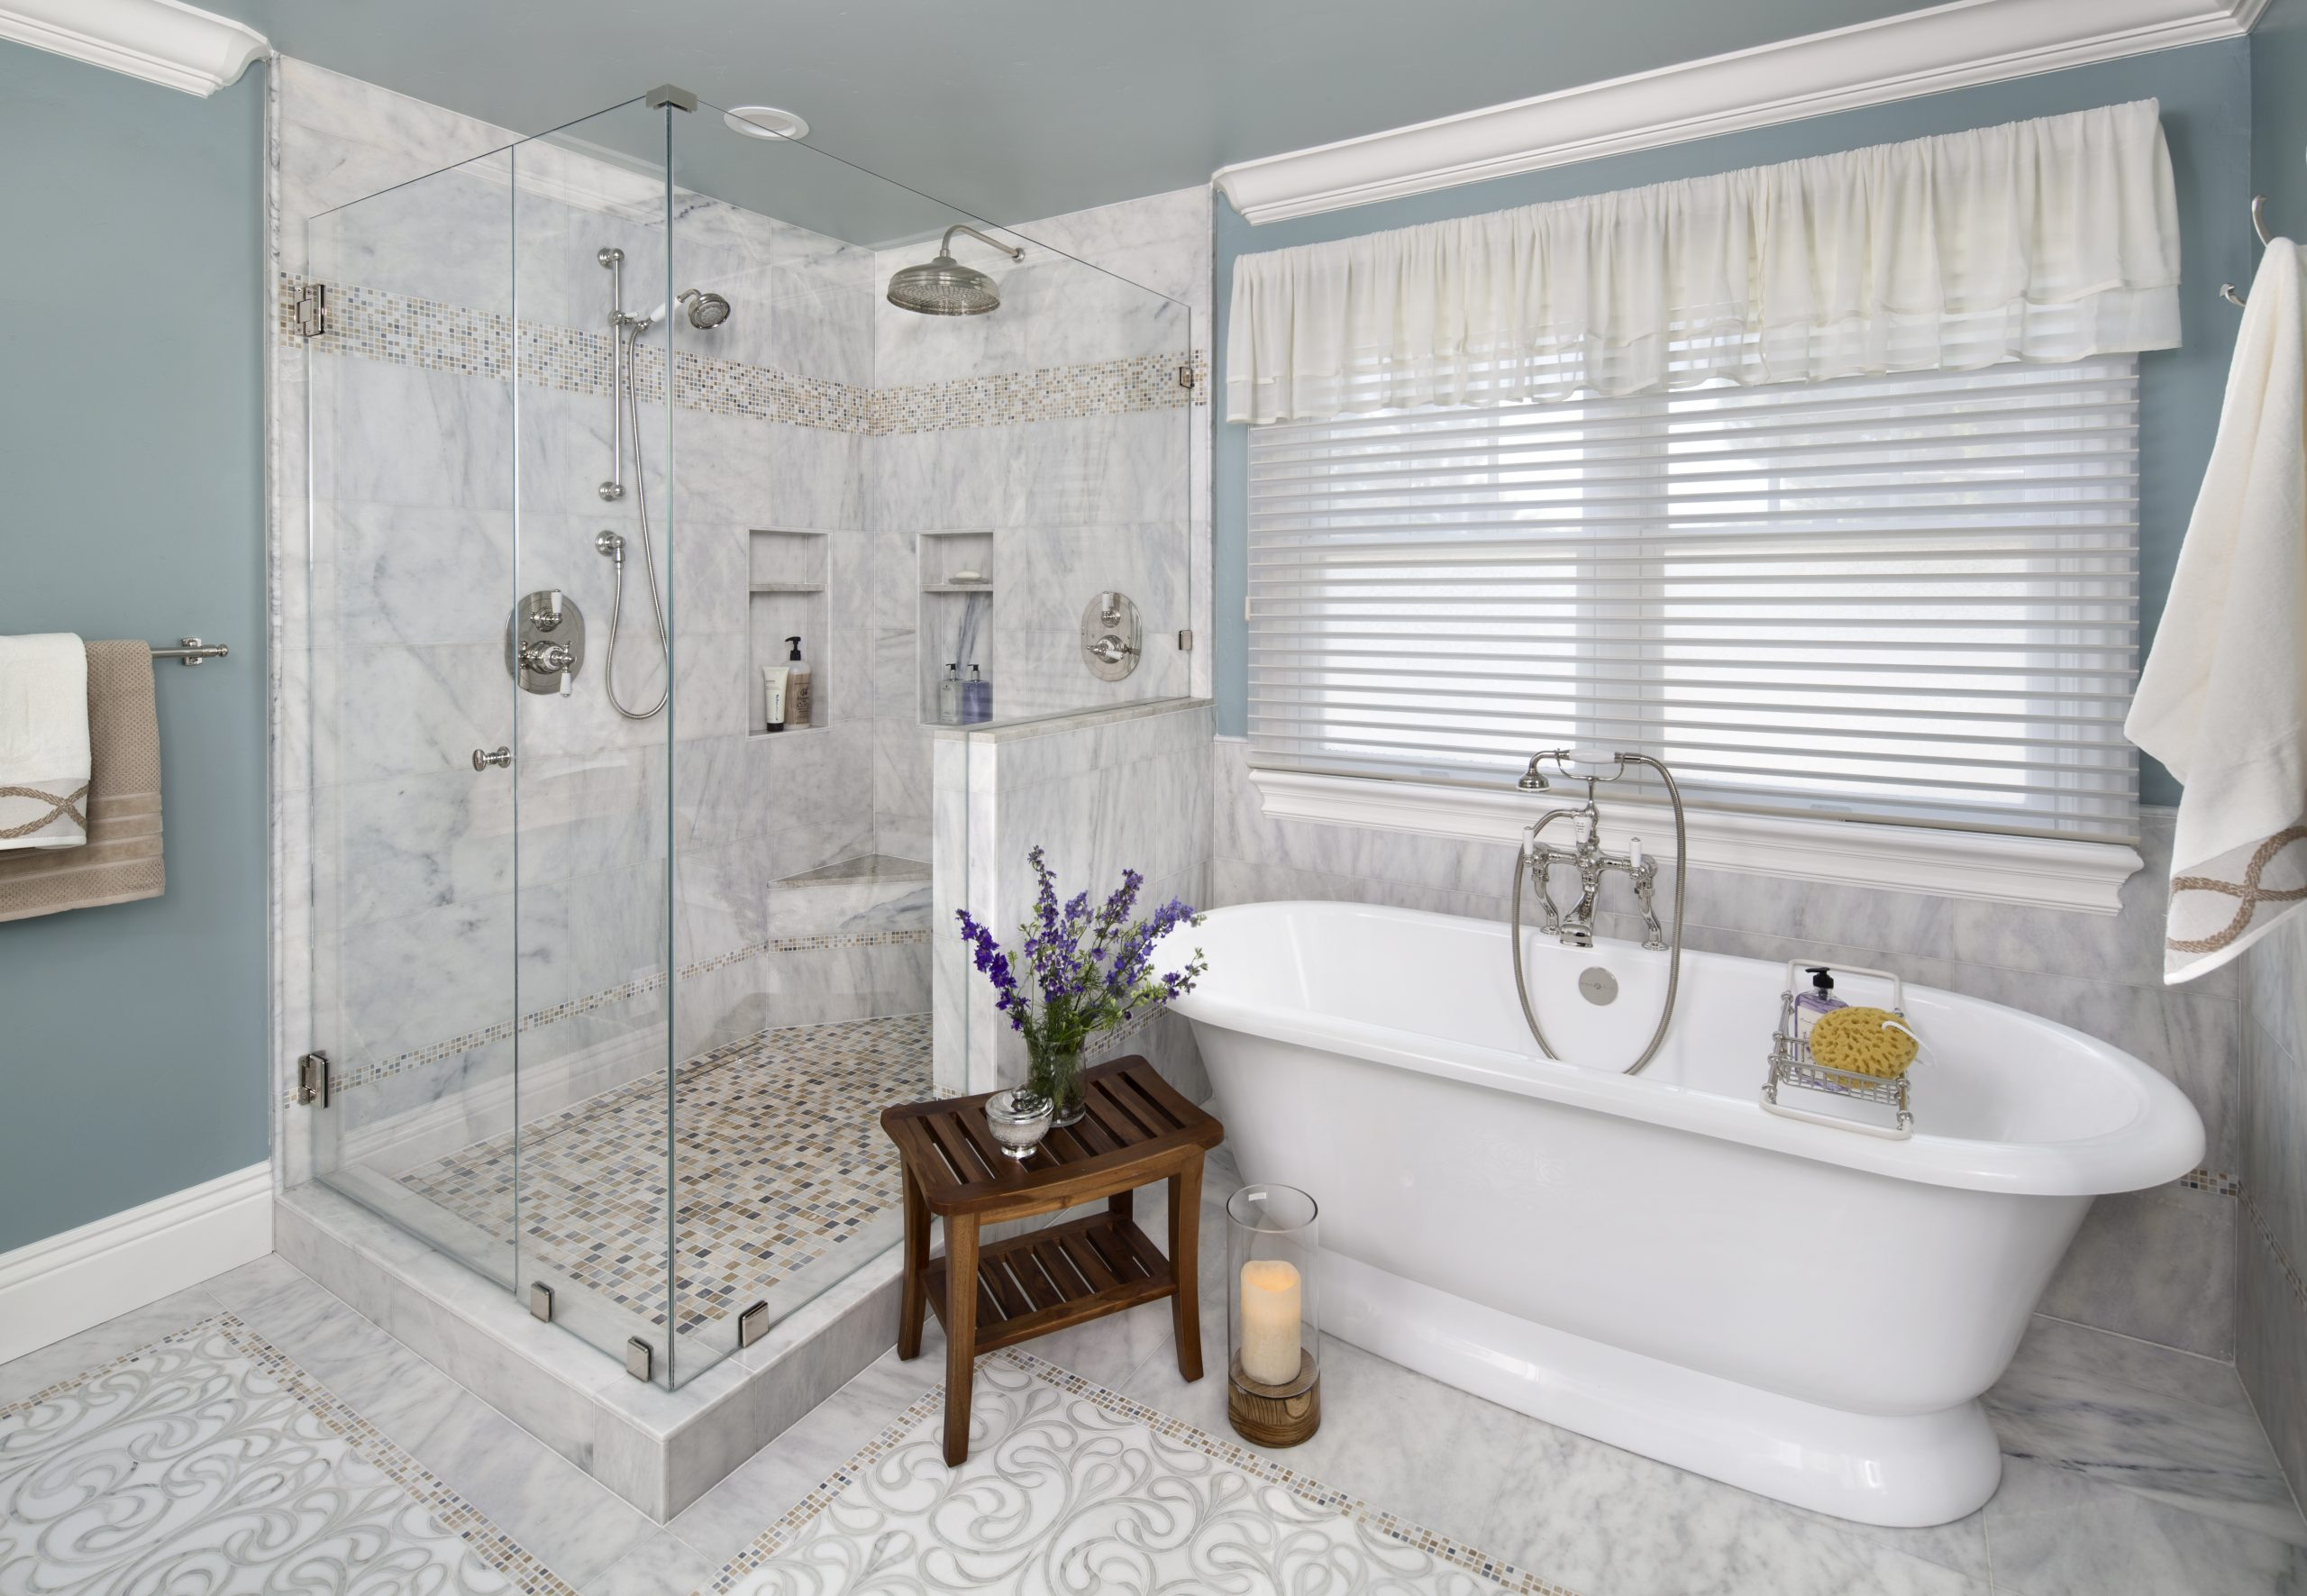 A white porcelain tub with a stone floor shower.